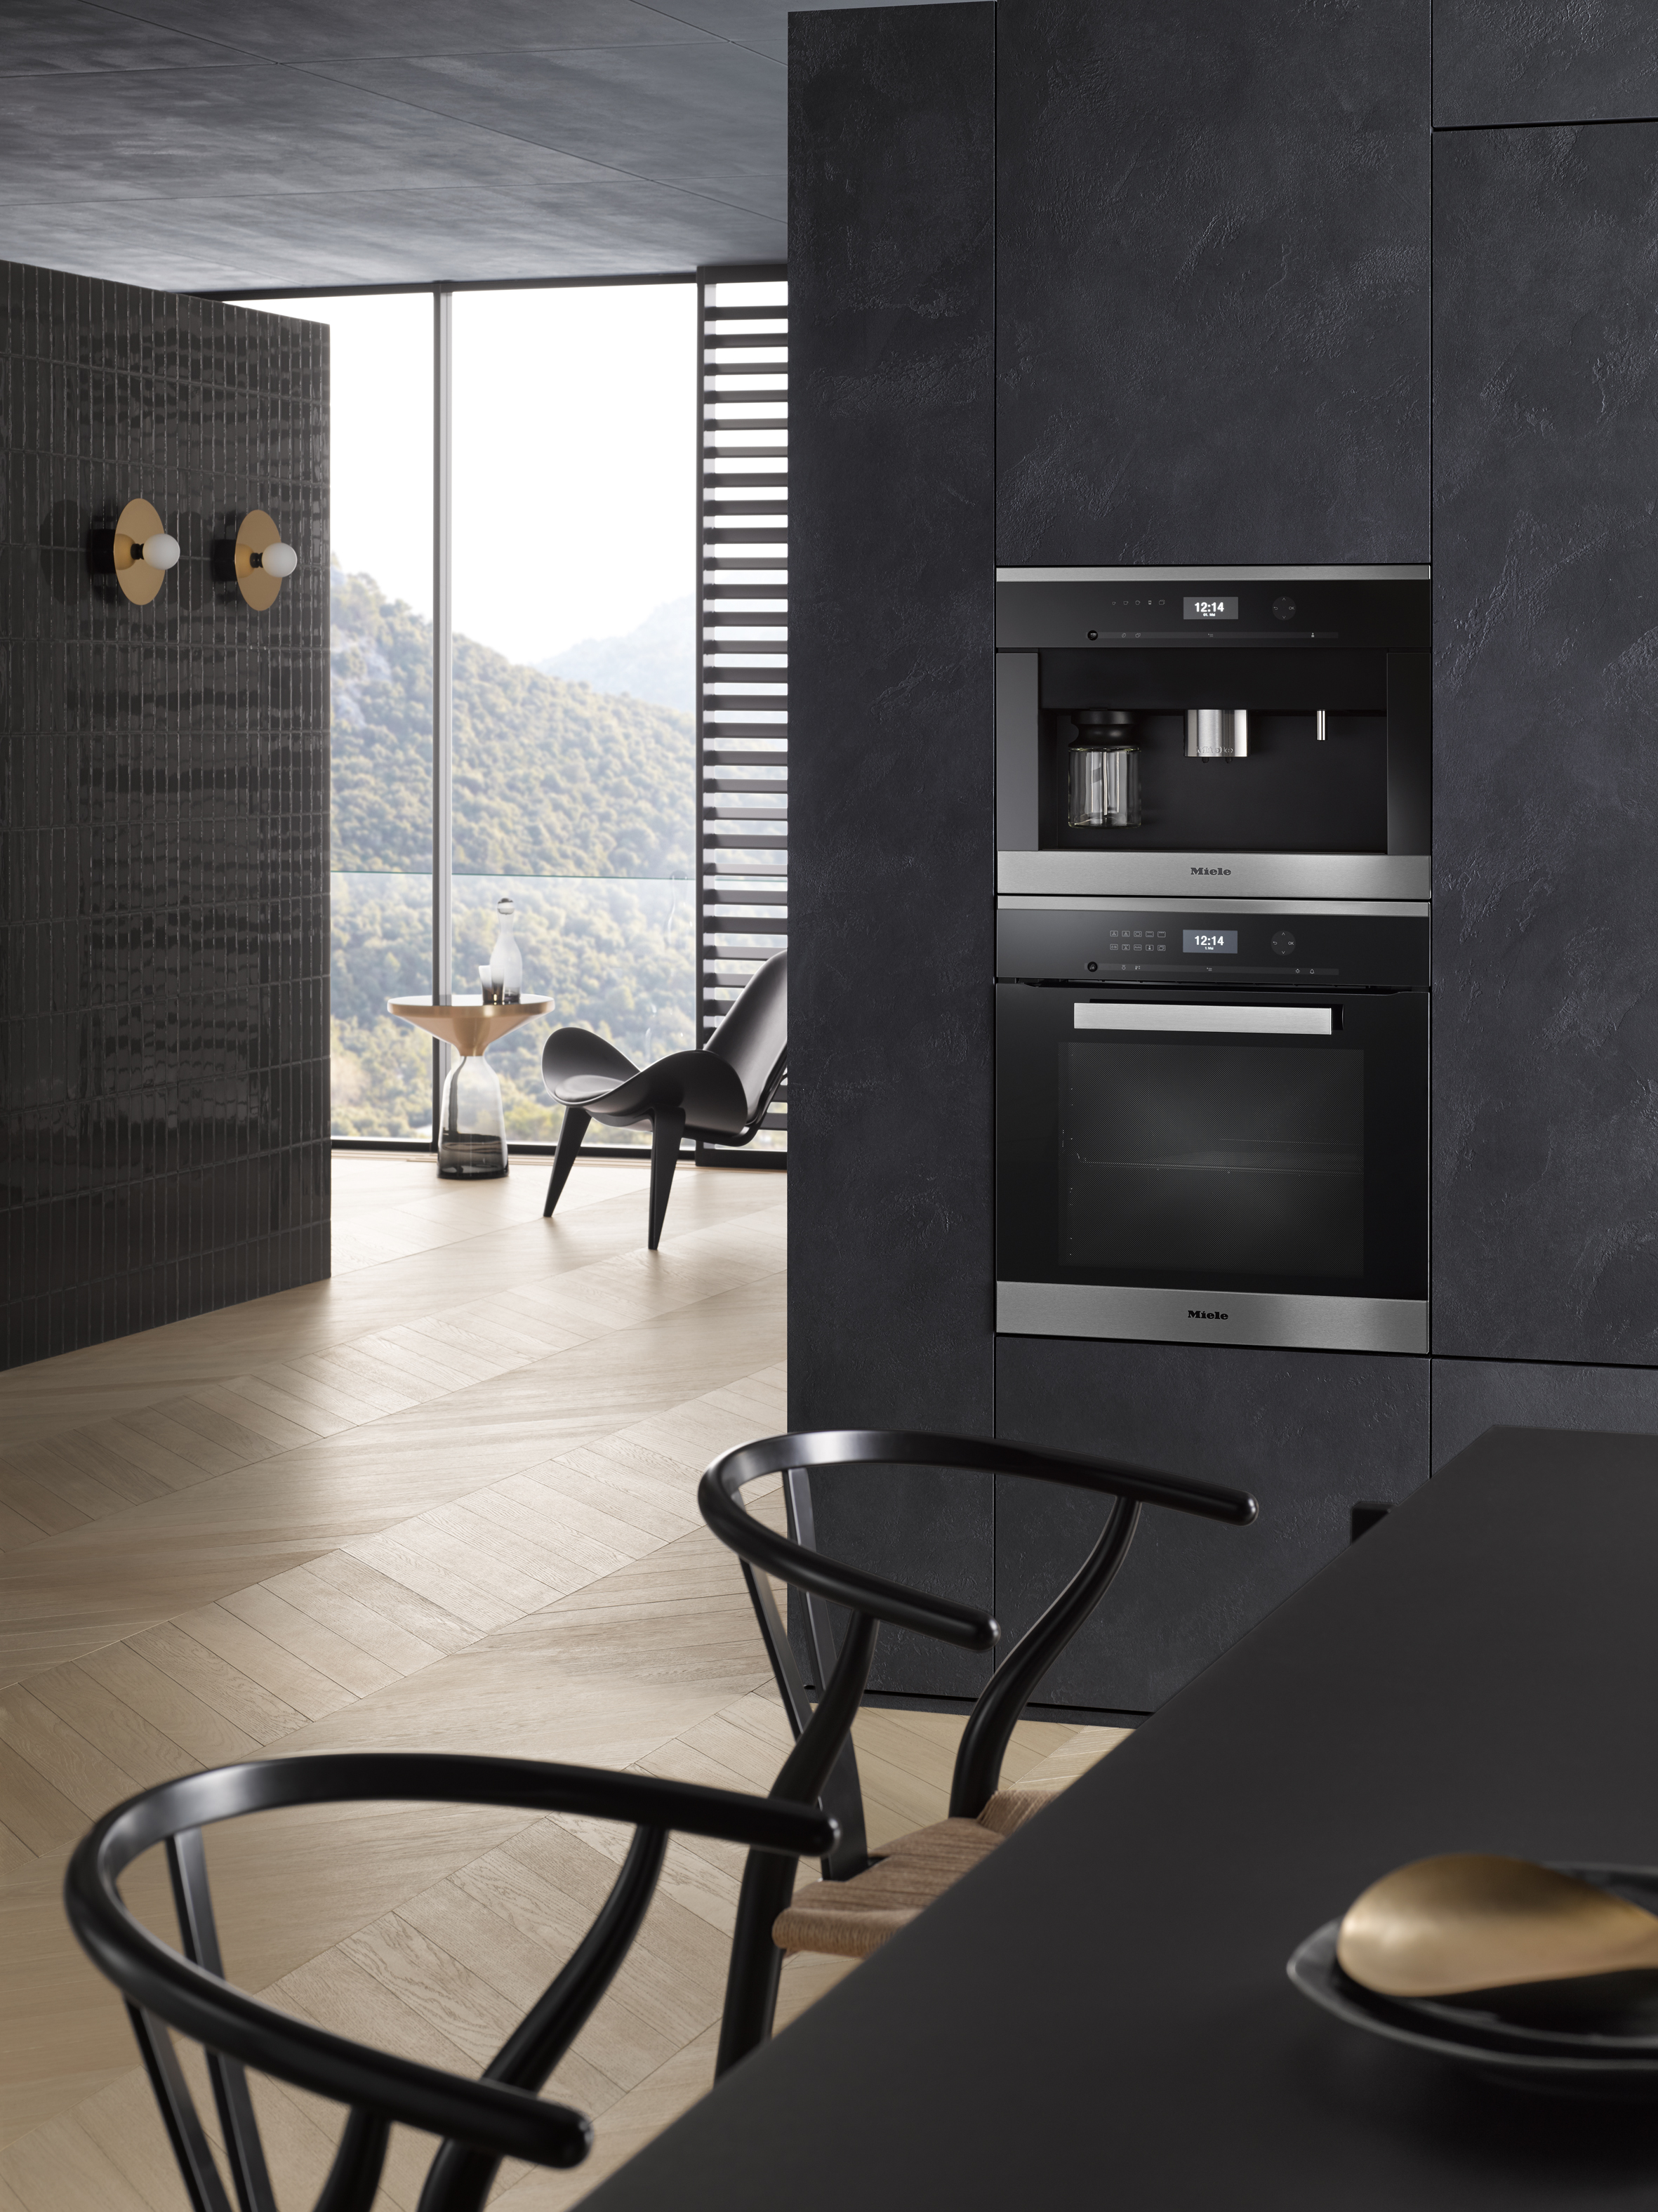 Miele Coffee at Home CVA 6401